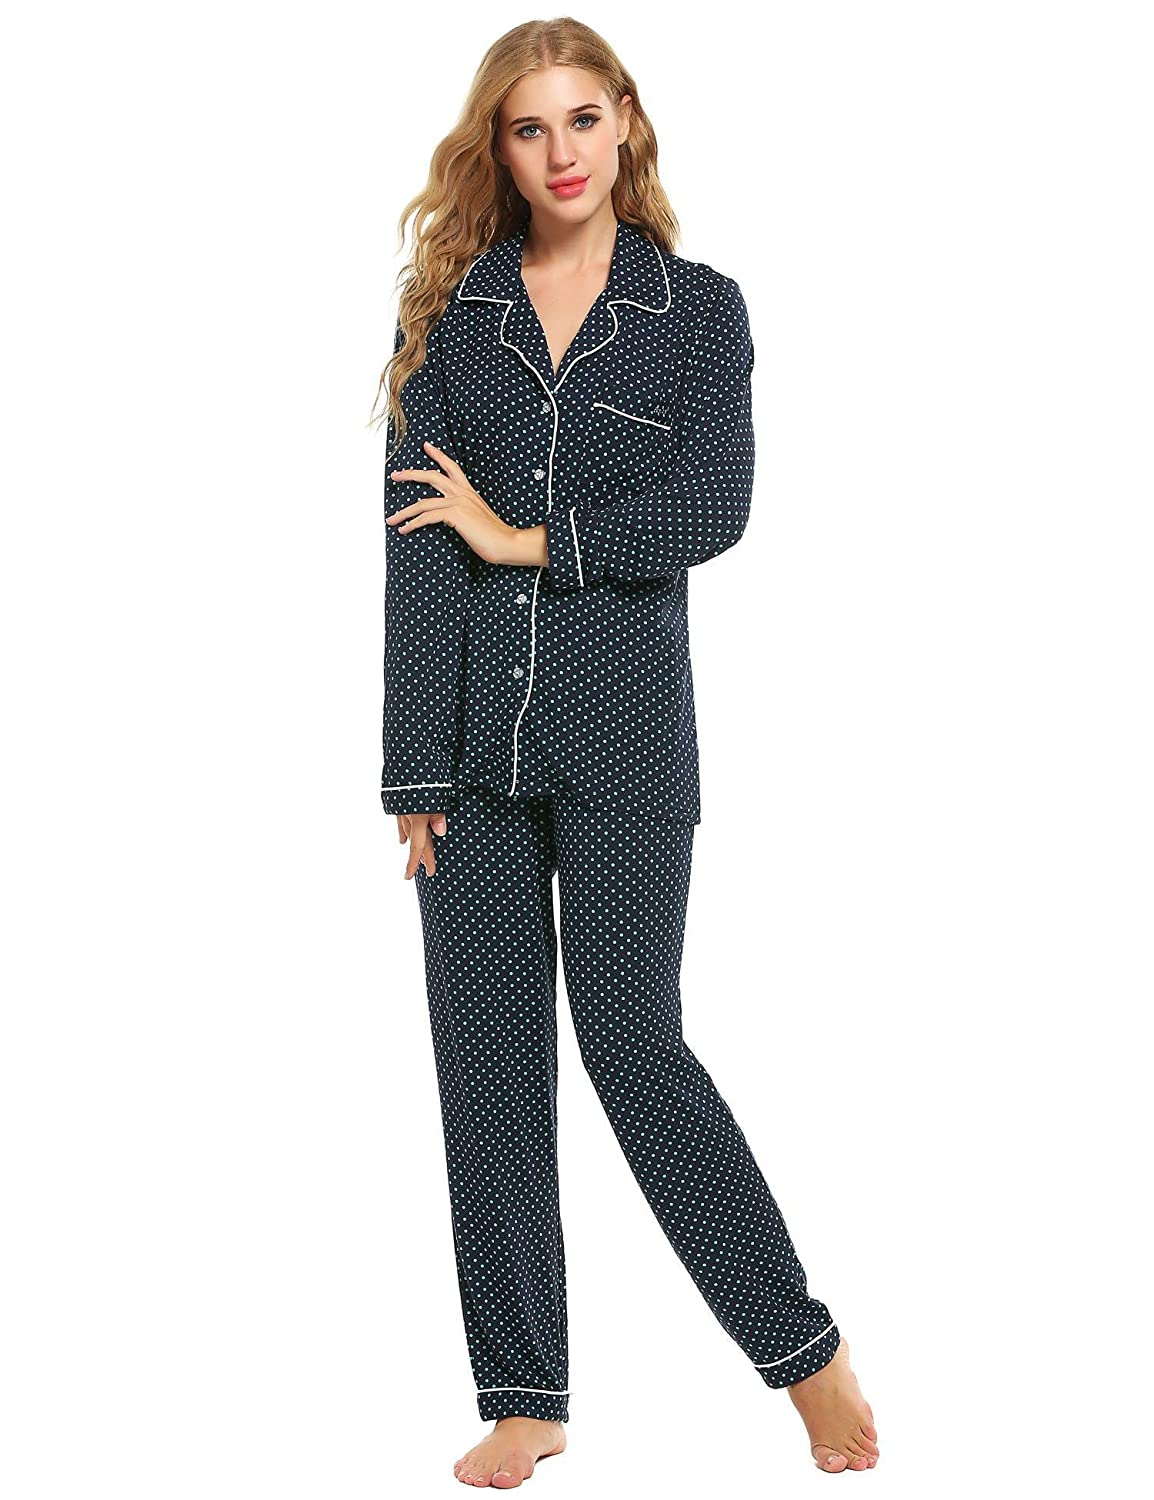 99a1f53210 Bifast Women s Comfort Sleepwear Long Sleeve Pajama With PJ Set XS-XXL at  Amazon Women s Clothing store